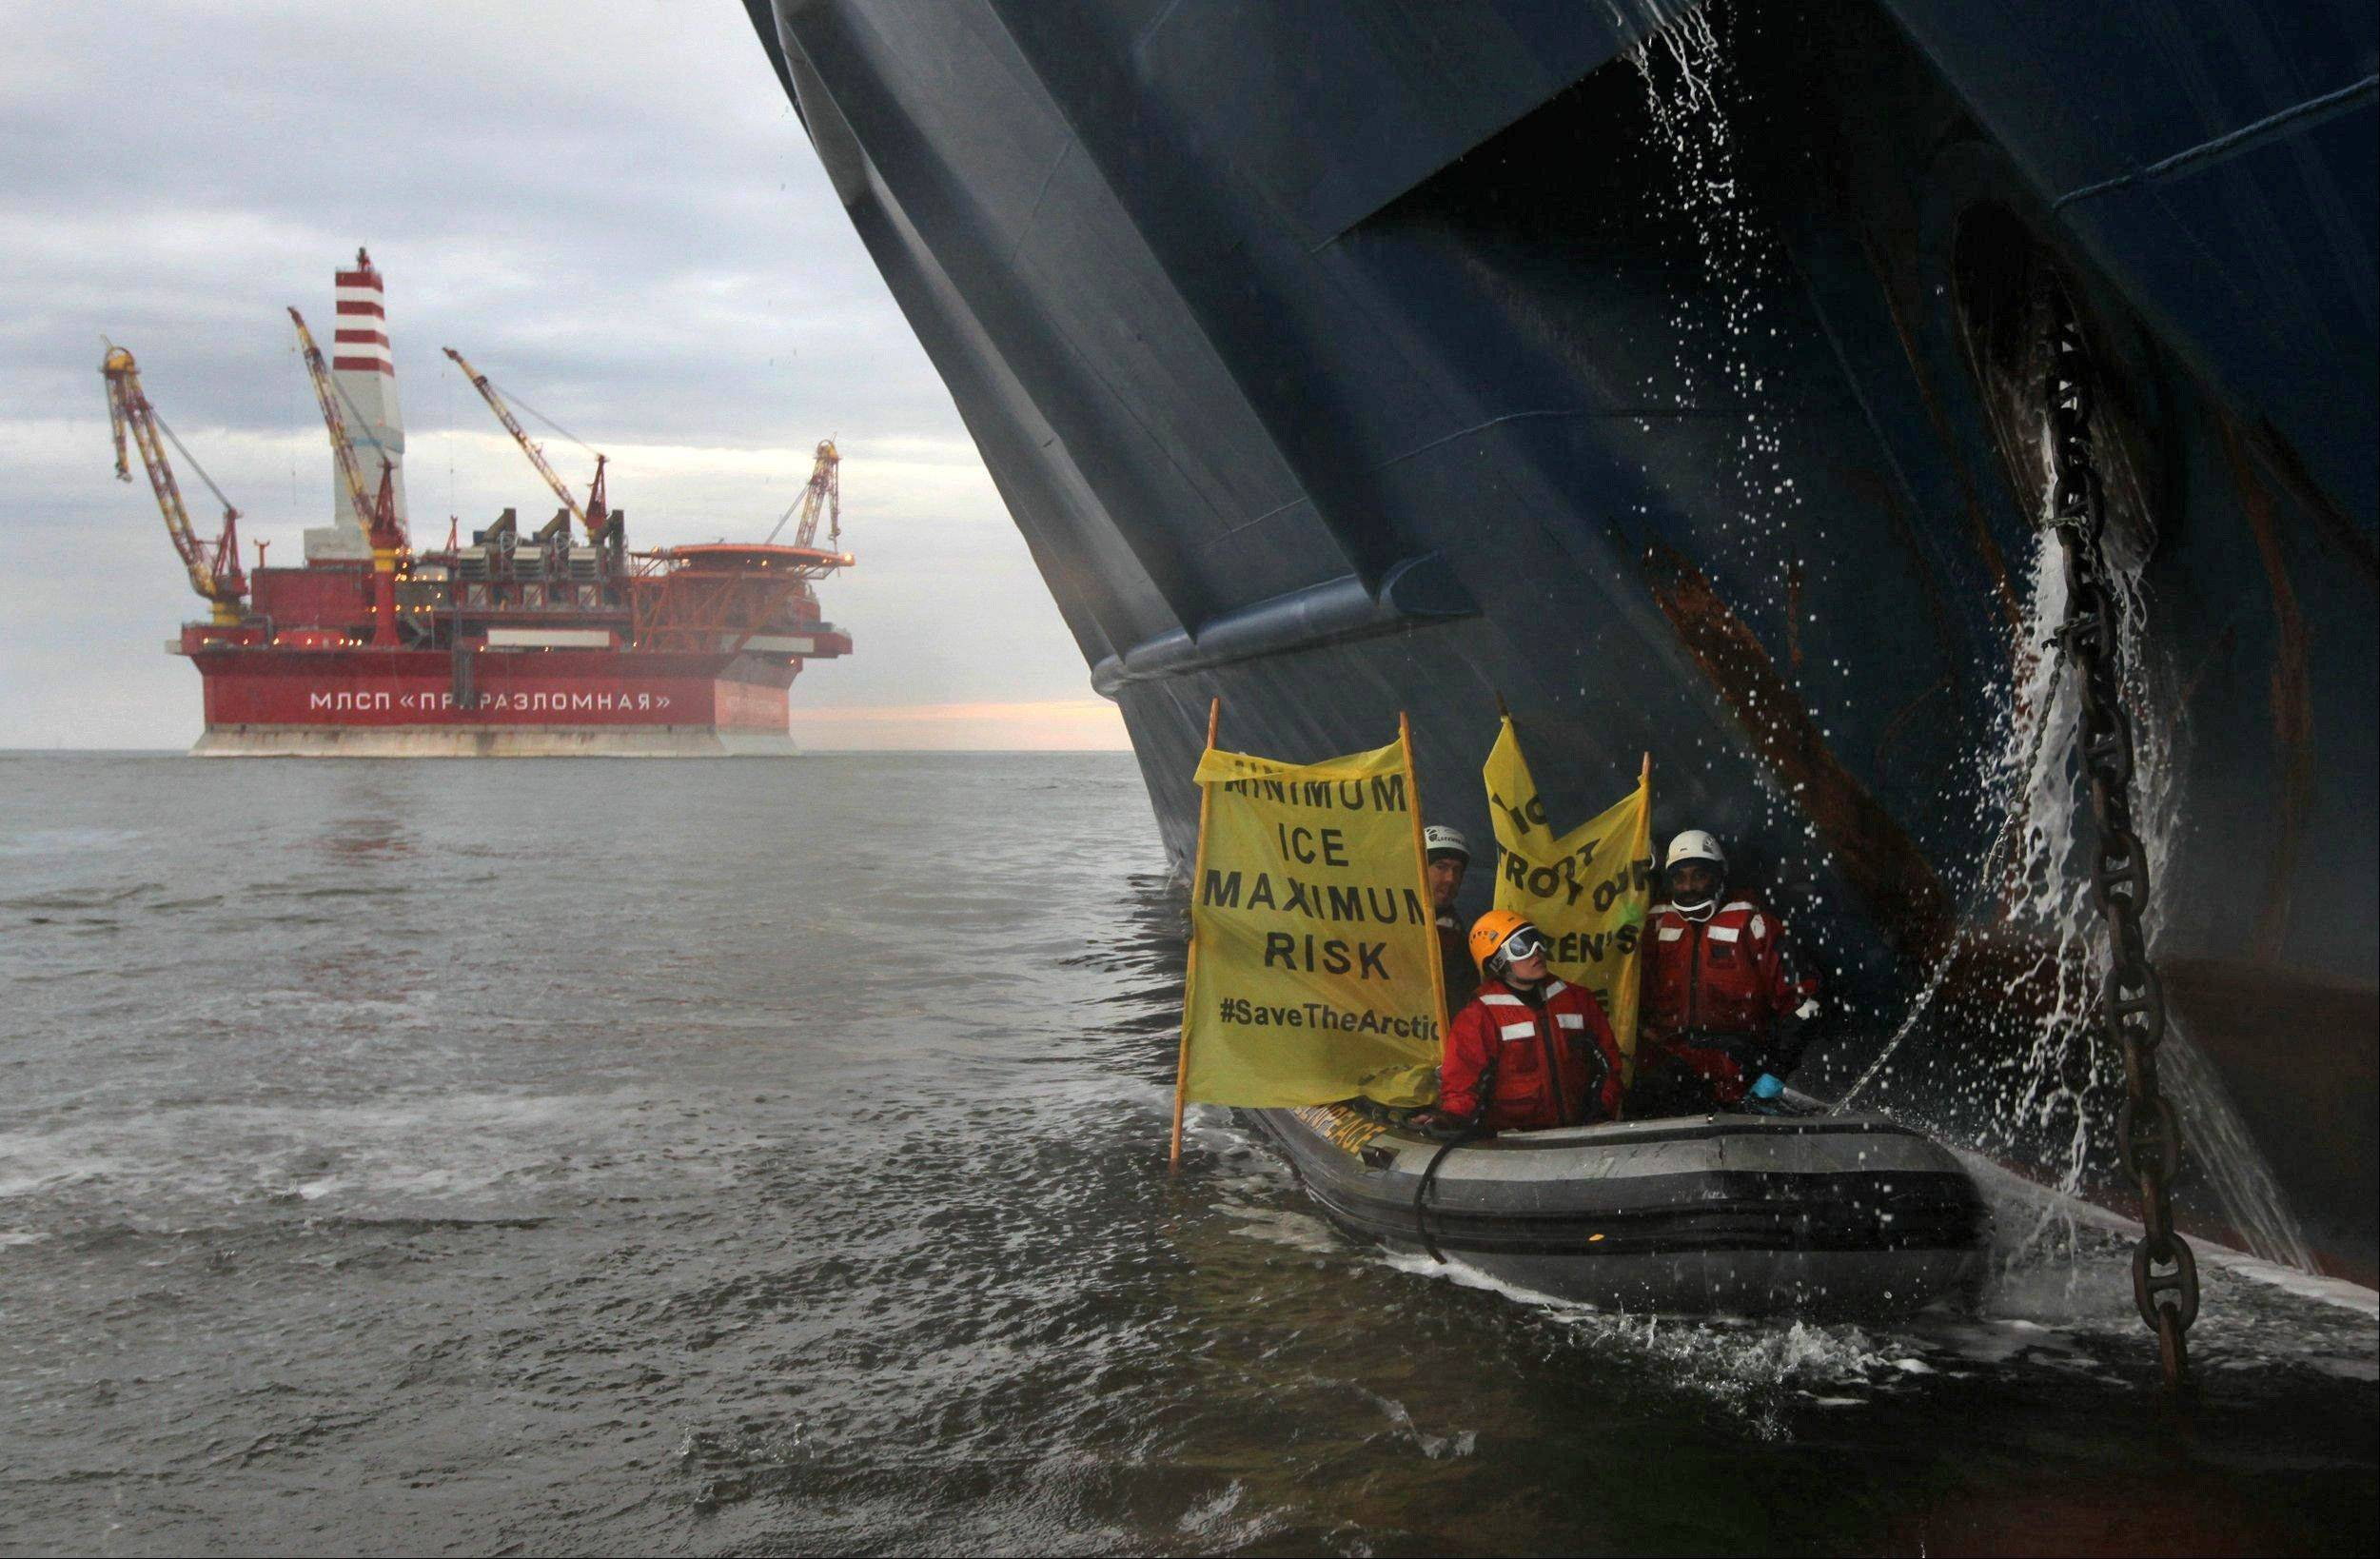 This image made available by environmental organization Greenpeace shows Greenpeace activists chained to the anchor chain of the Anna Akhmatova, the vessel which was carrying Gazprom's workers to the Prirazlomnaya platform, in the Pechora Sea about 620 miles from the nearest port. Gazprom is pioneering Russia's oil drilling in the Arctic.